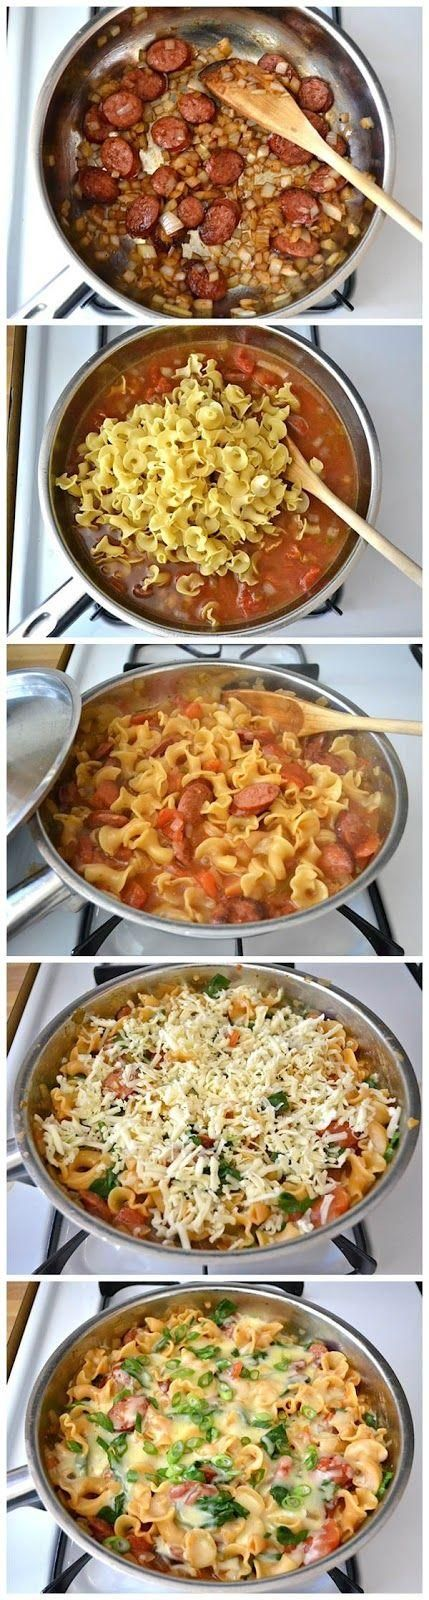 Creamy Spinach and Sausage Pasta. 6 oz. smoked sausage  1 Tbsp olive oil  1 medium onion  1 (14.5 oz.) can diced tomatoes w/chiles  2 cups chicken broth  8 oz. pasta  3 cups fresh spinach  1 cup (4 oz.) shredded monterrey jack  1 whole green onion